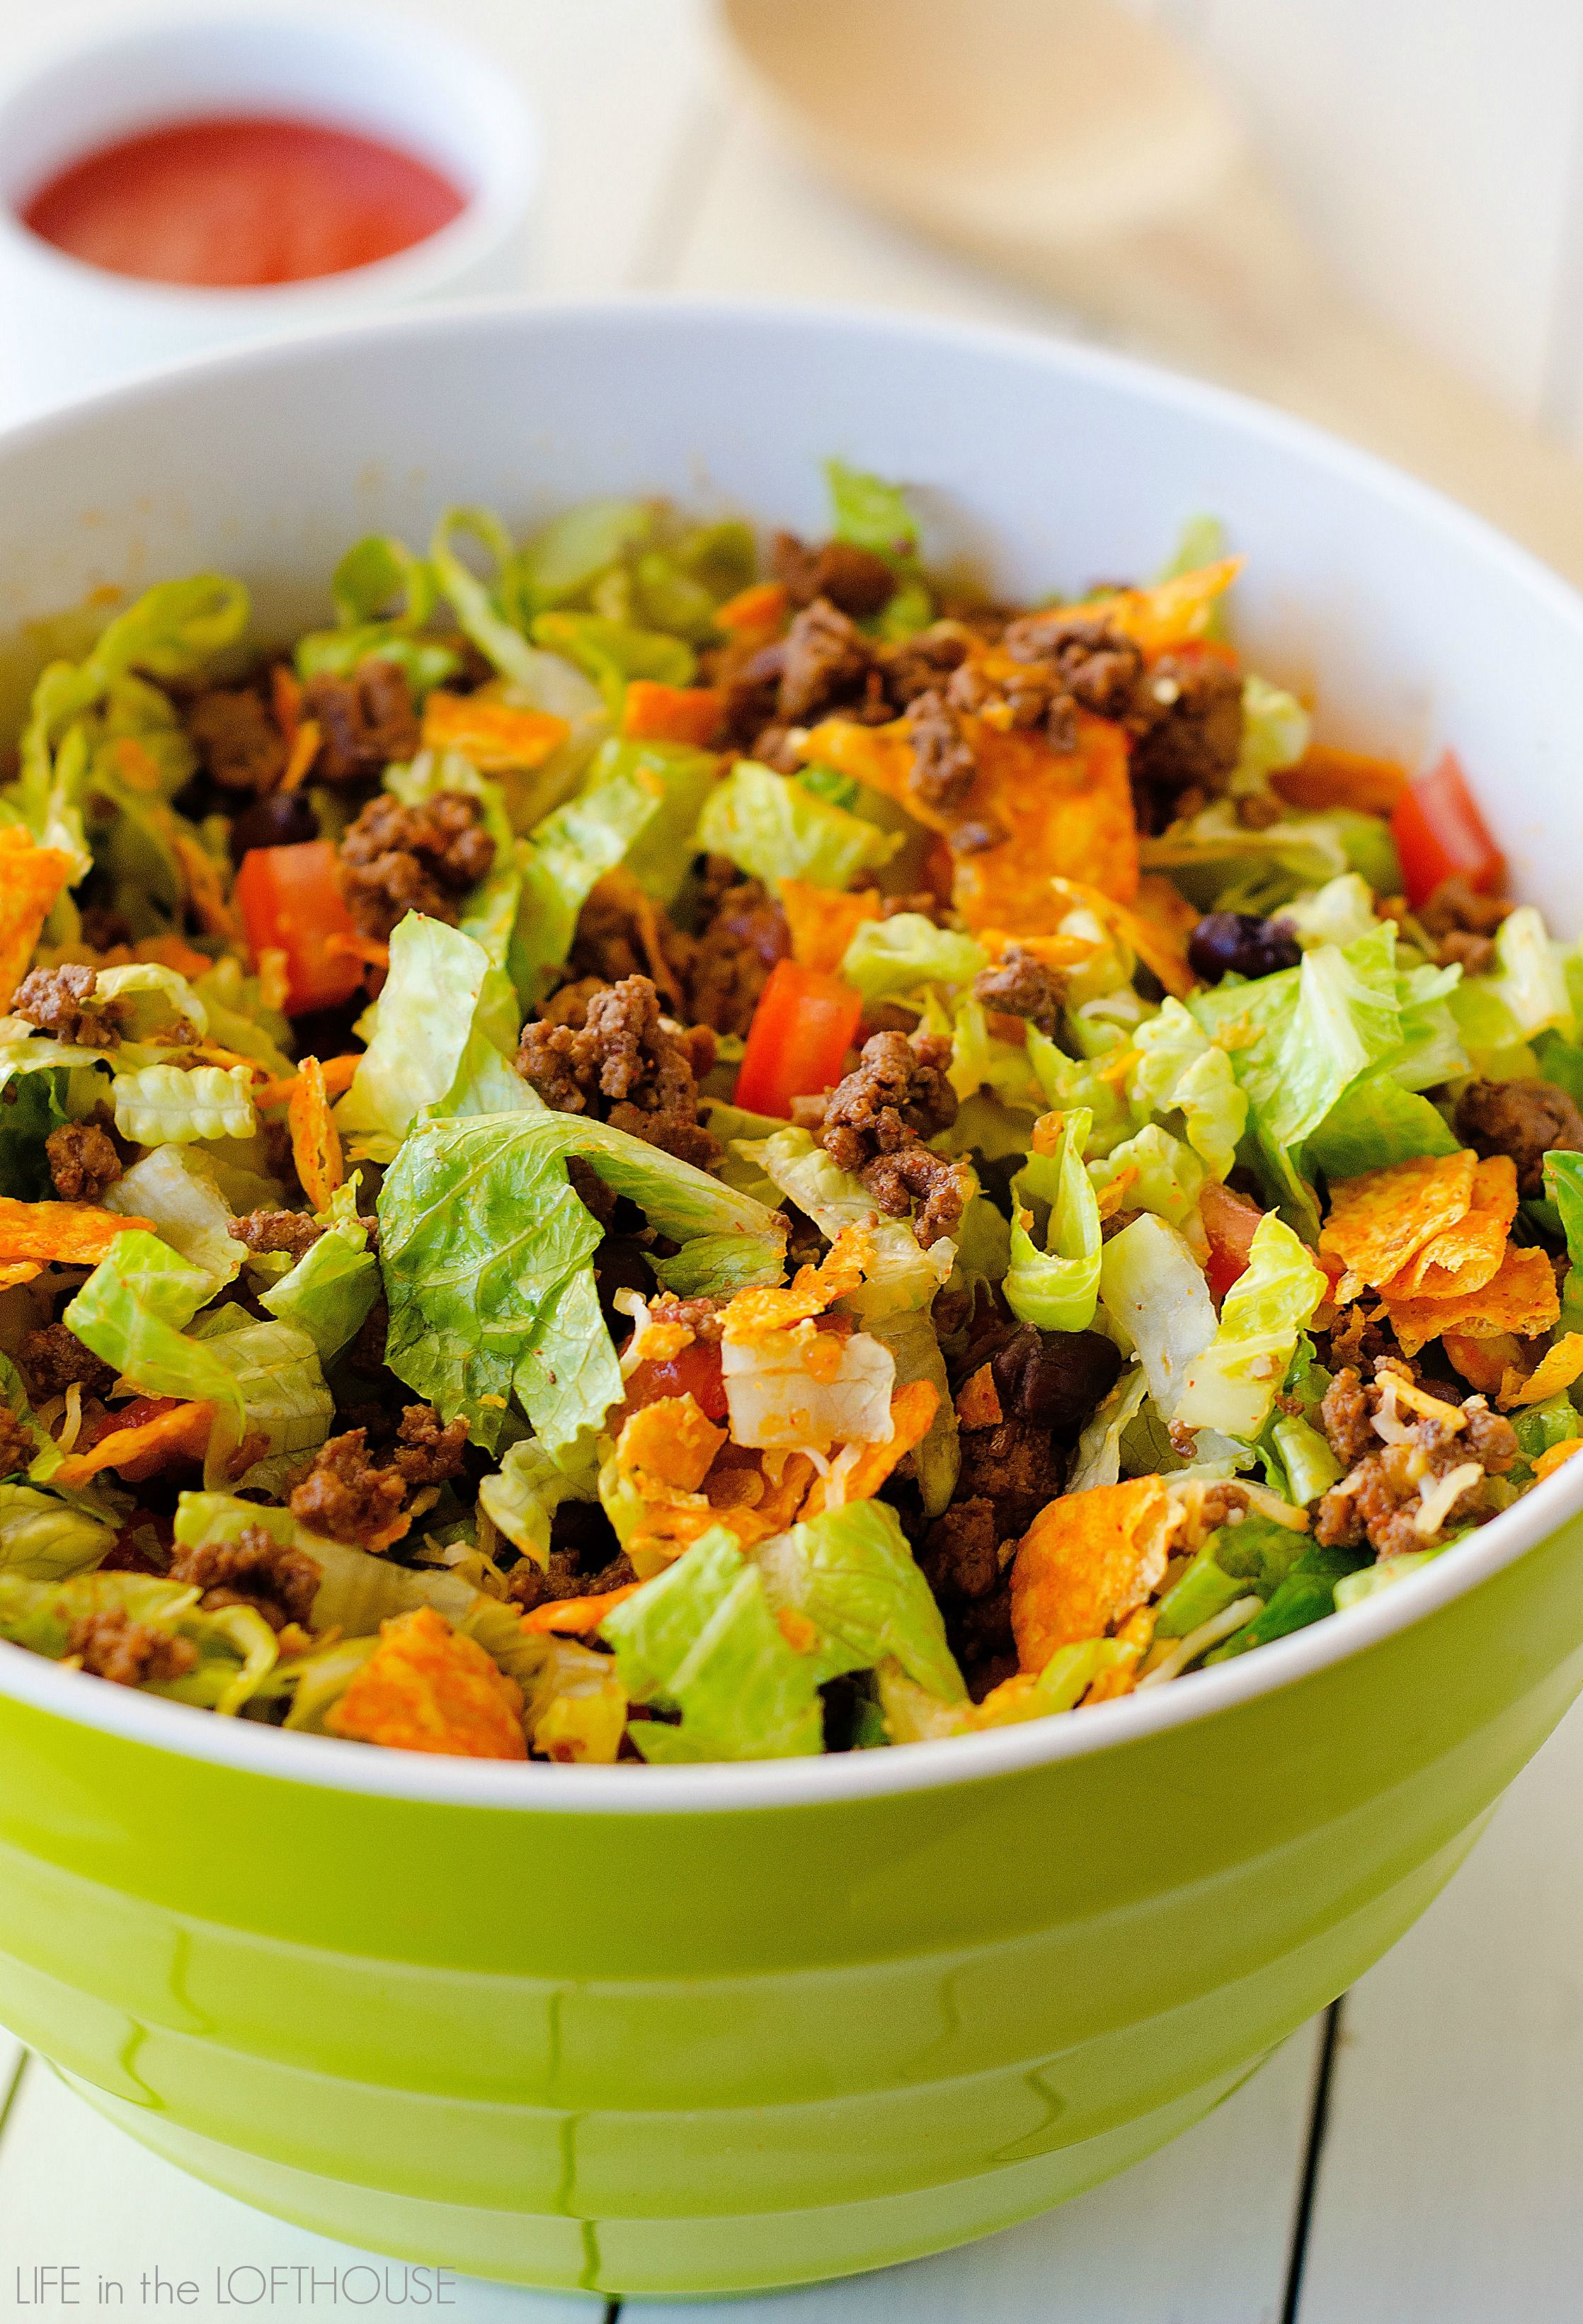 My family and I love this salad. It is packed with all kinds of deliciousness. Seasoned ground beef, black beans, cheese, lettuce and don't forget the Nacho cheese Doritos. They make the salad! This Doritos Taco Salad comes together in just about 20 minutes tops! Salads like this are my go-to for … #tacosalad